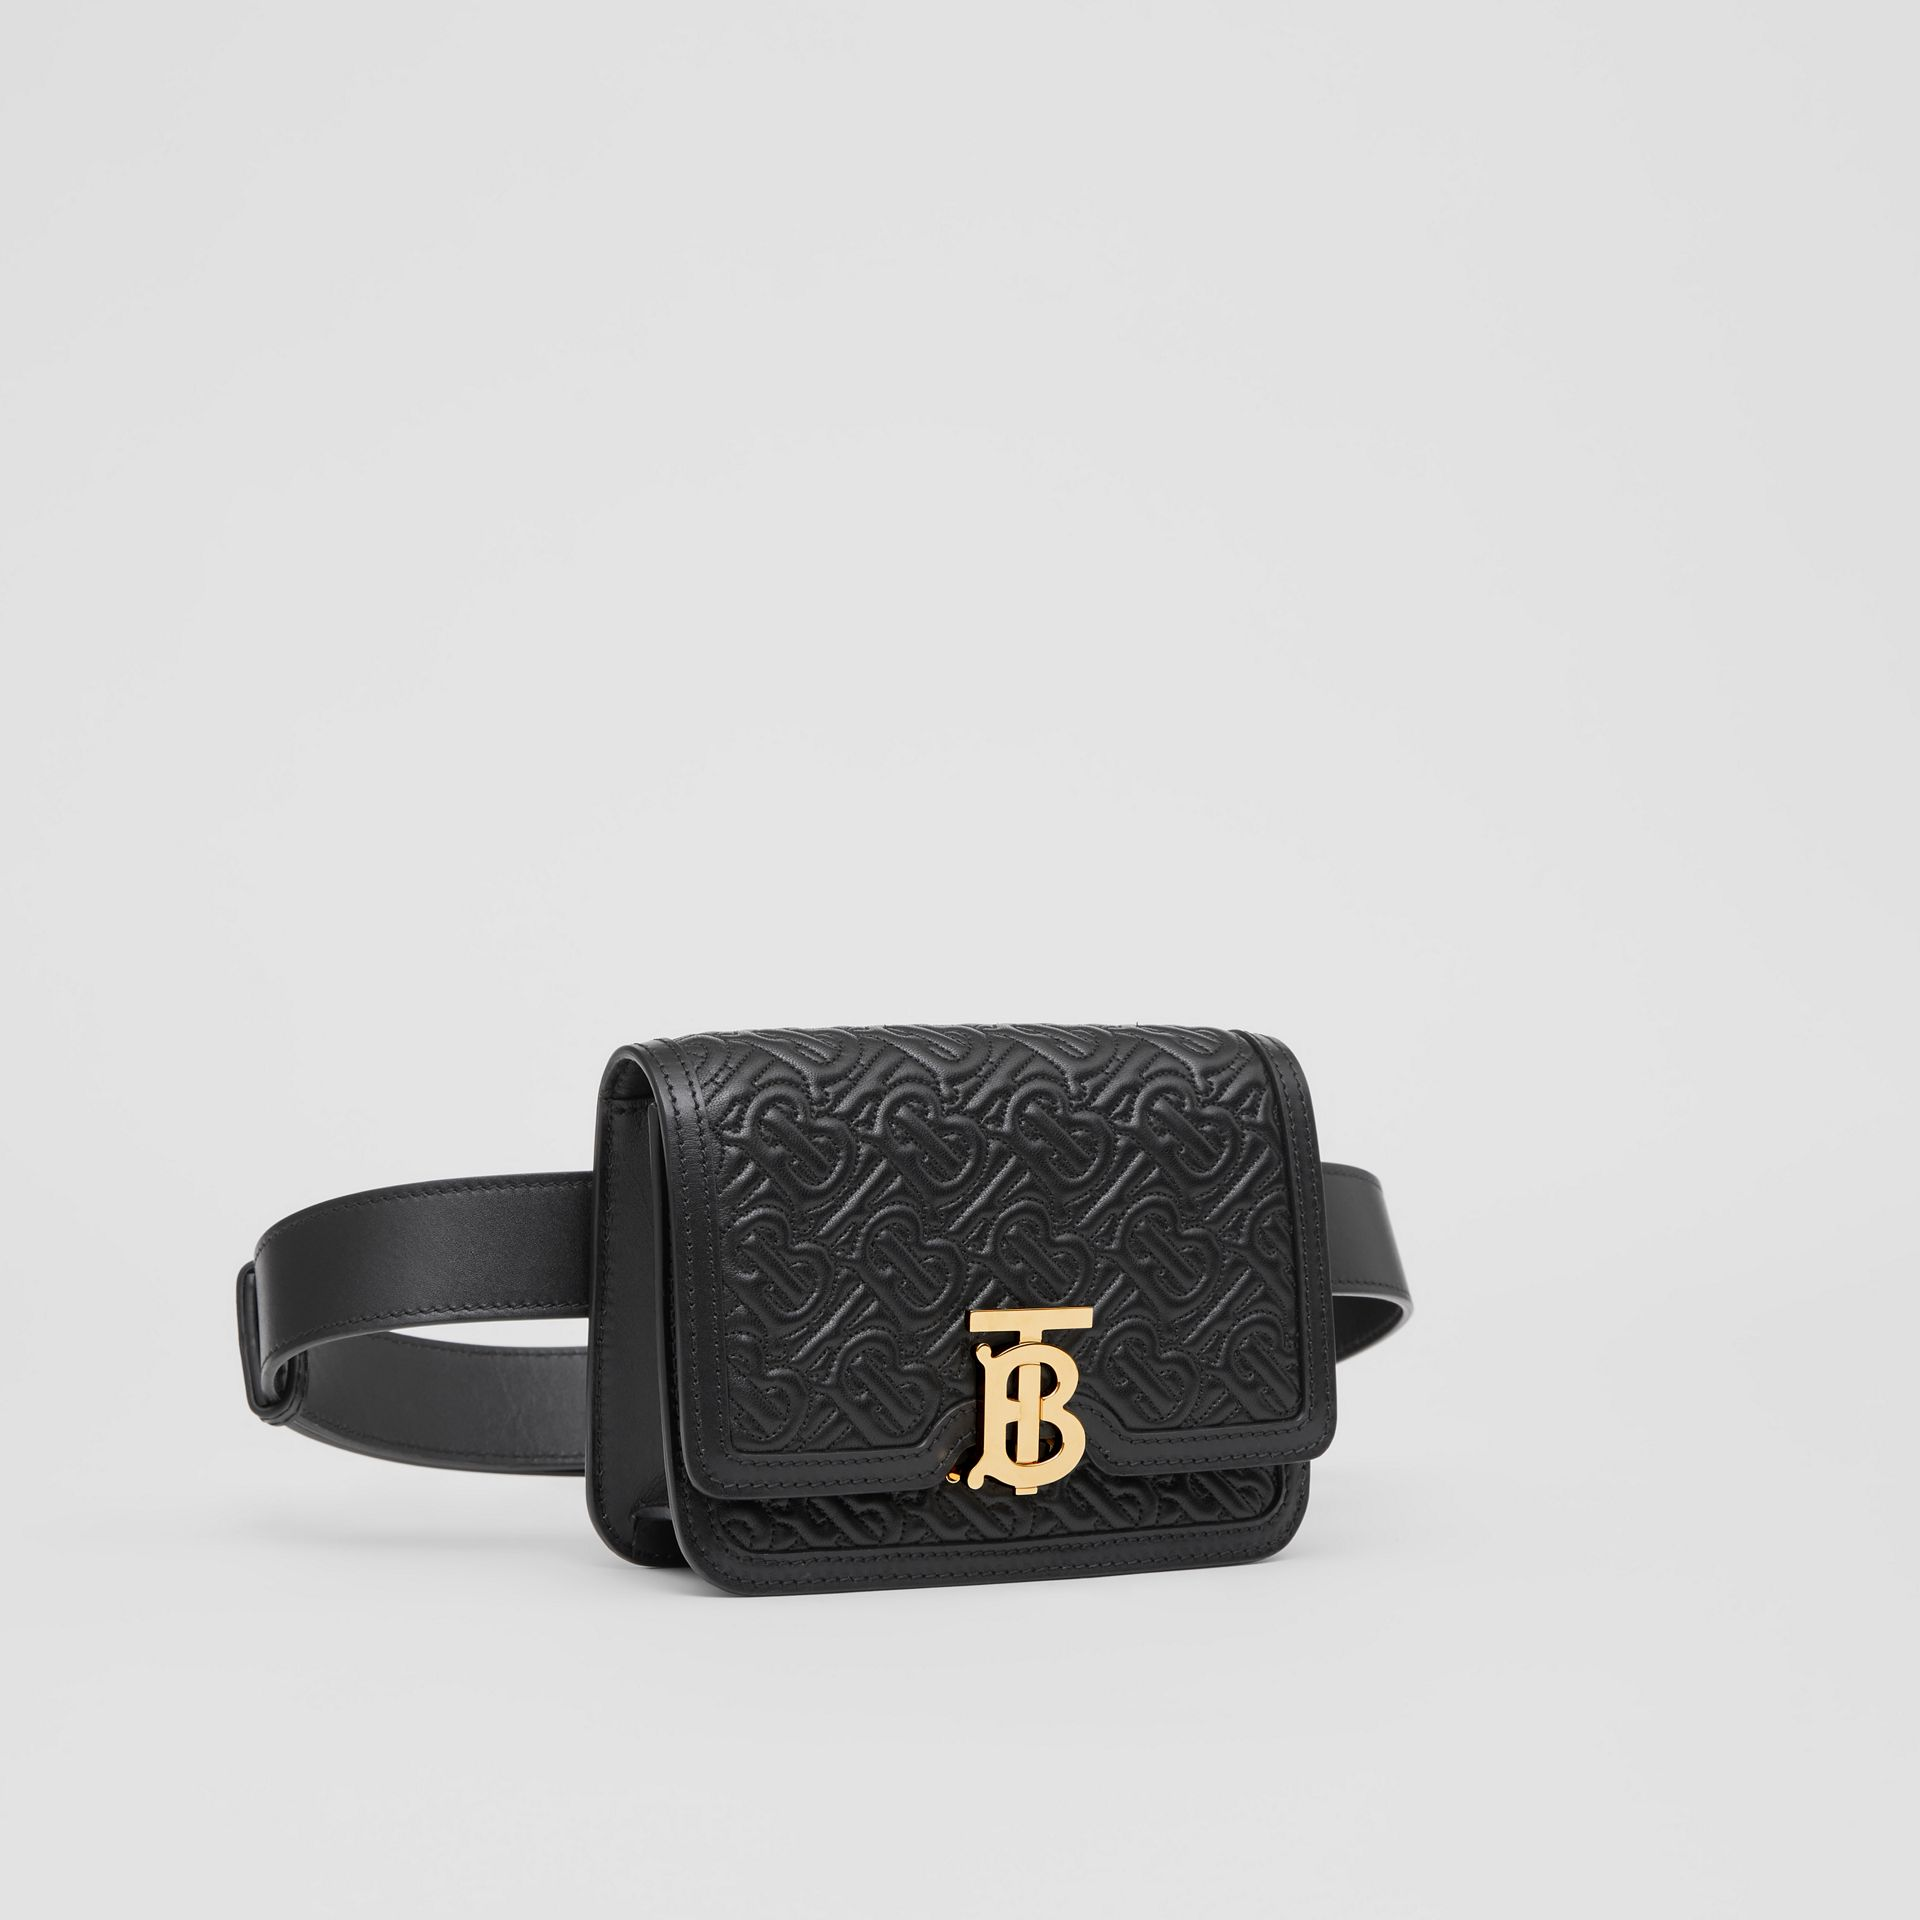 Belted Quilted Monogram Lambskin TB Bag in Black - Women | Burberry - gallery image 6